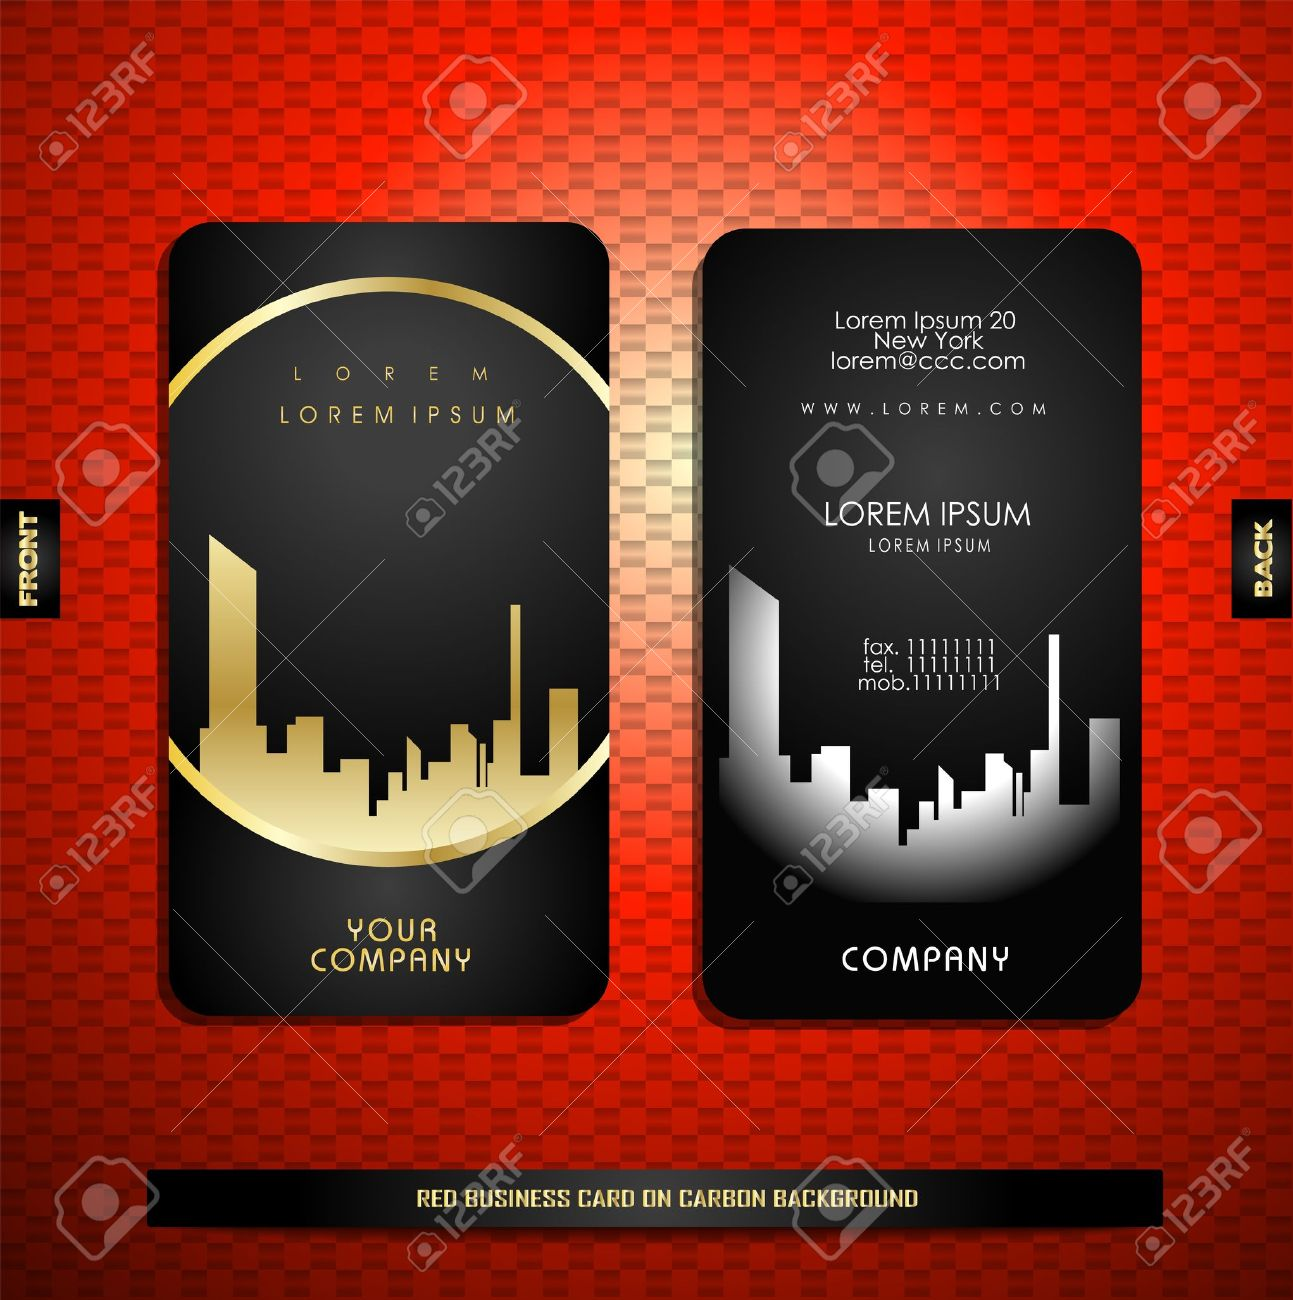 Black with gold business card on carbon background royalty free black with gold business card on carbon background stock vector 17050394 colourmoves